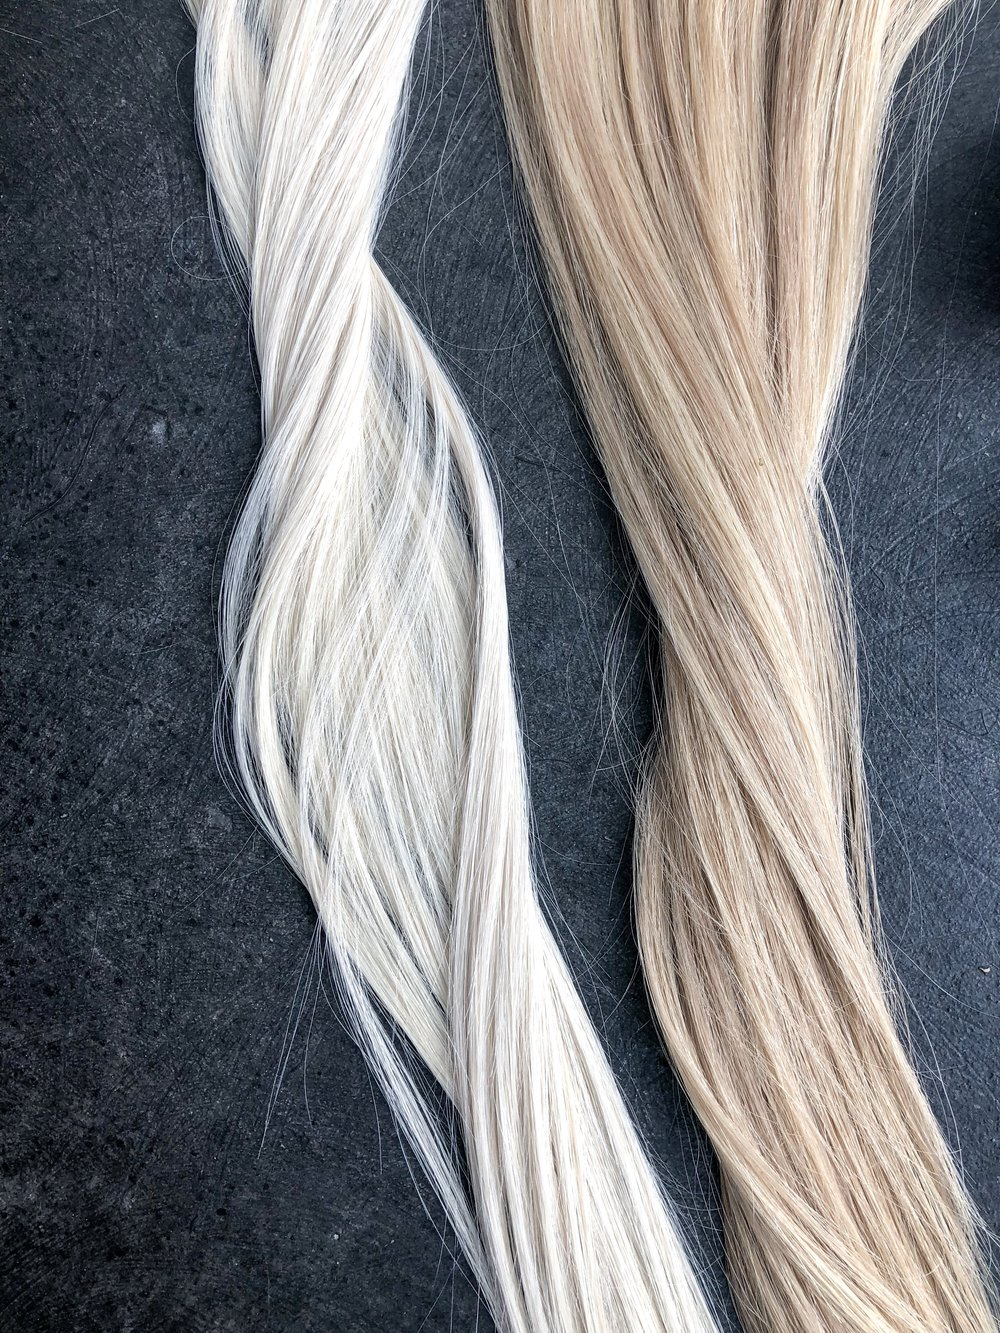 Sky & Mariah, side by side. You can also purple shampoo or tone each shade for a cooler result!